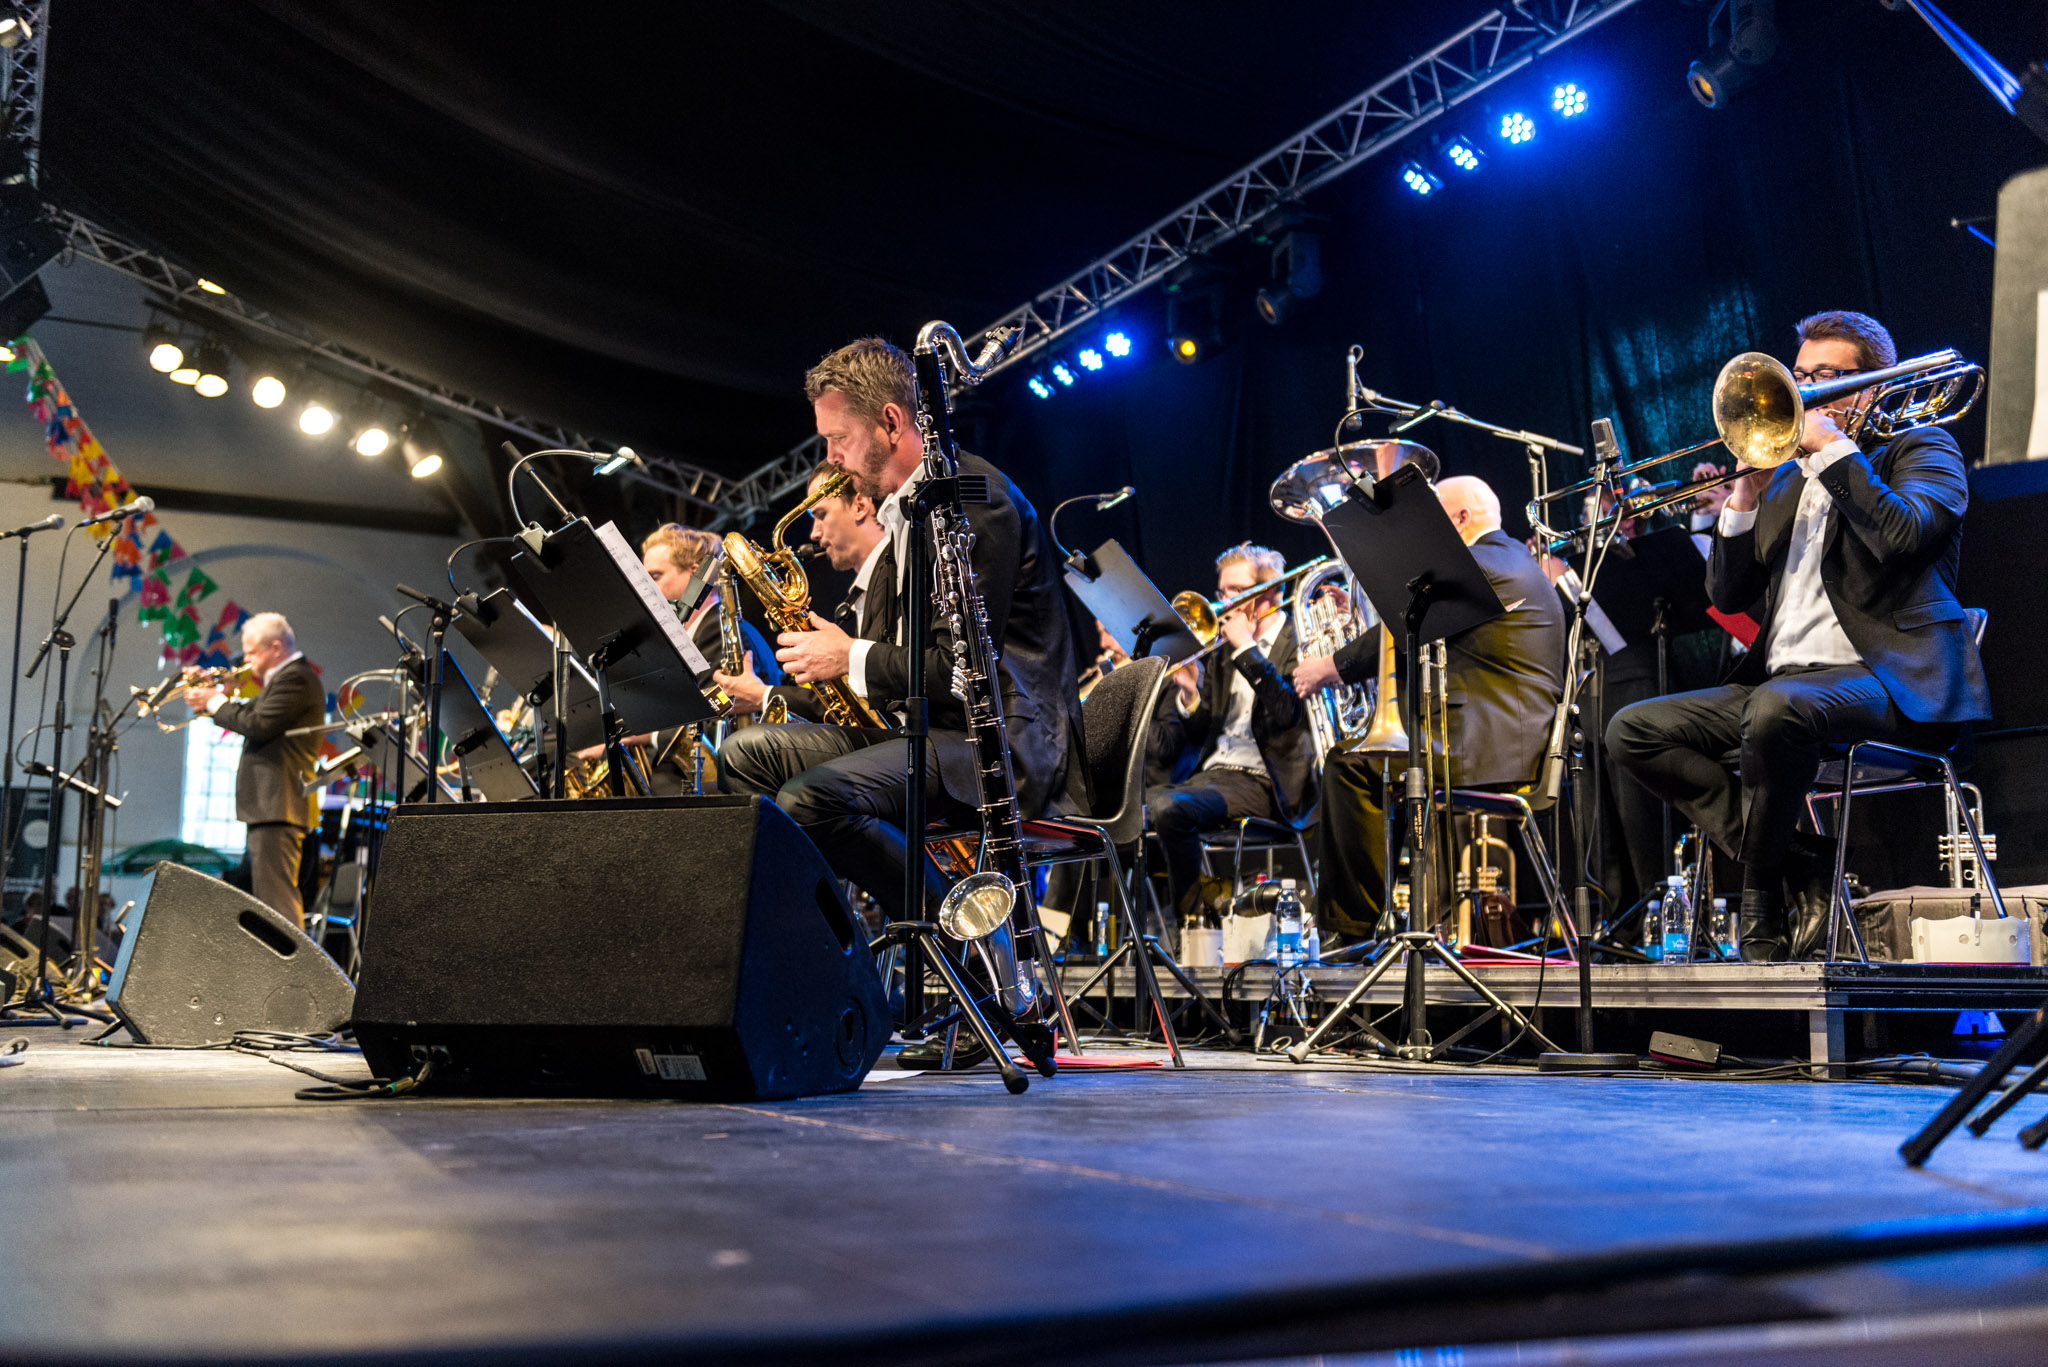 Aarhus Jazz Orchestra Ridehuset Swinger Flamenco Big Band Nights Perico Sambeat